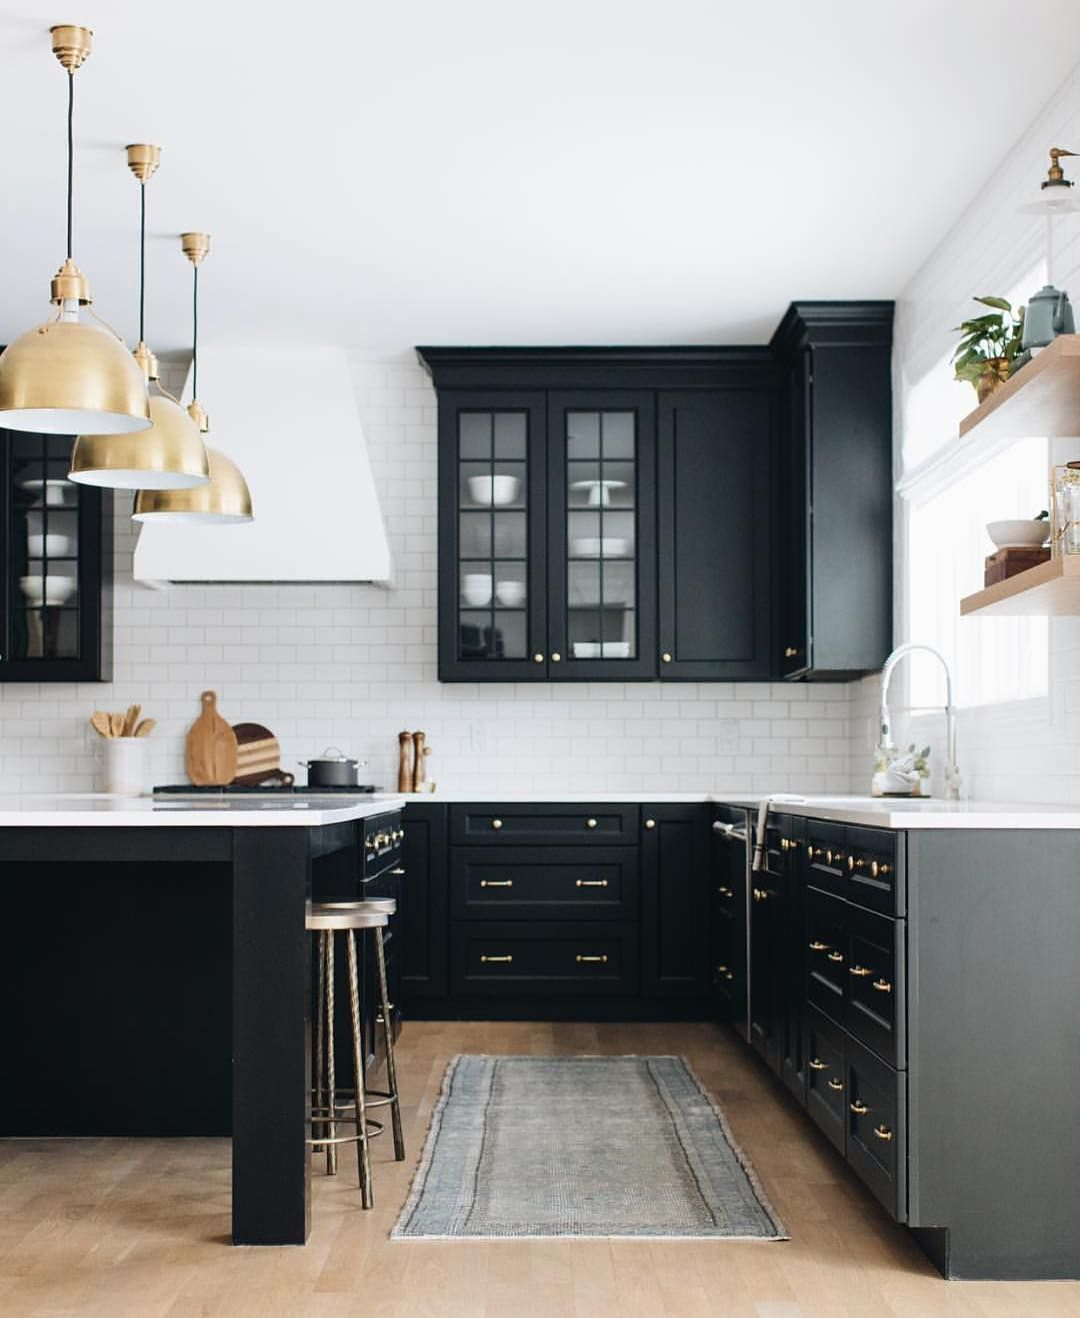 Kitchens Of Instagram On Instagram Loving These Black Cabinets From Redesignhomellc Stofferp Kitchen Design Kitchen Cabinet Styles Shaker Style Kitchens